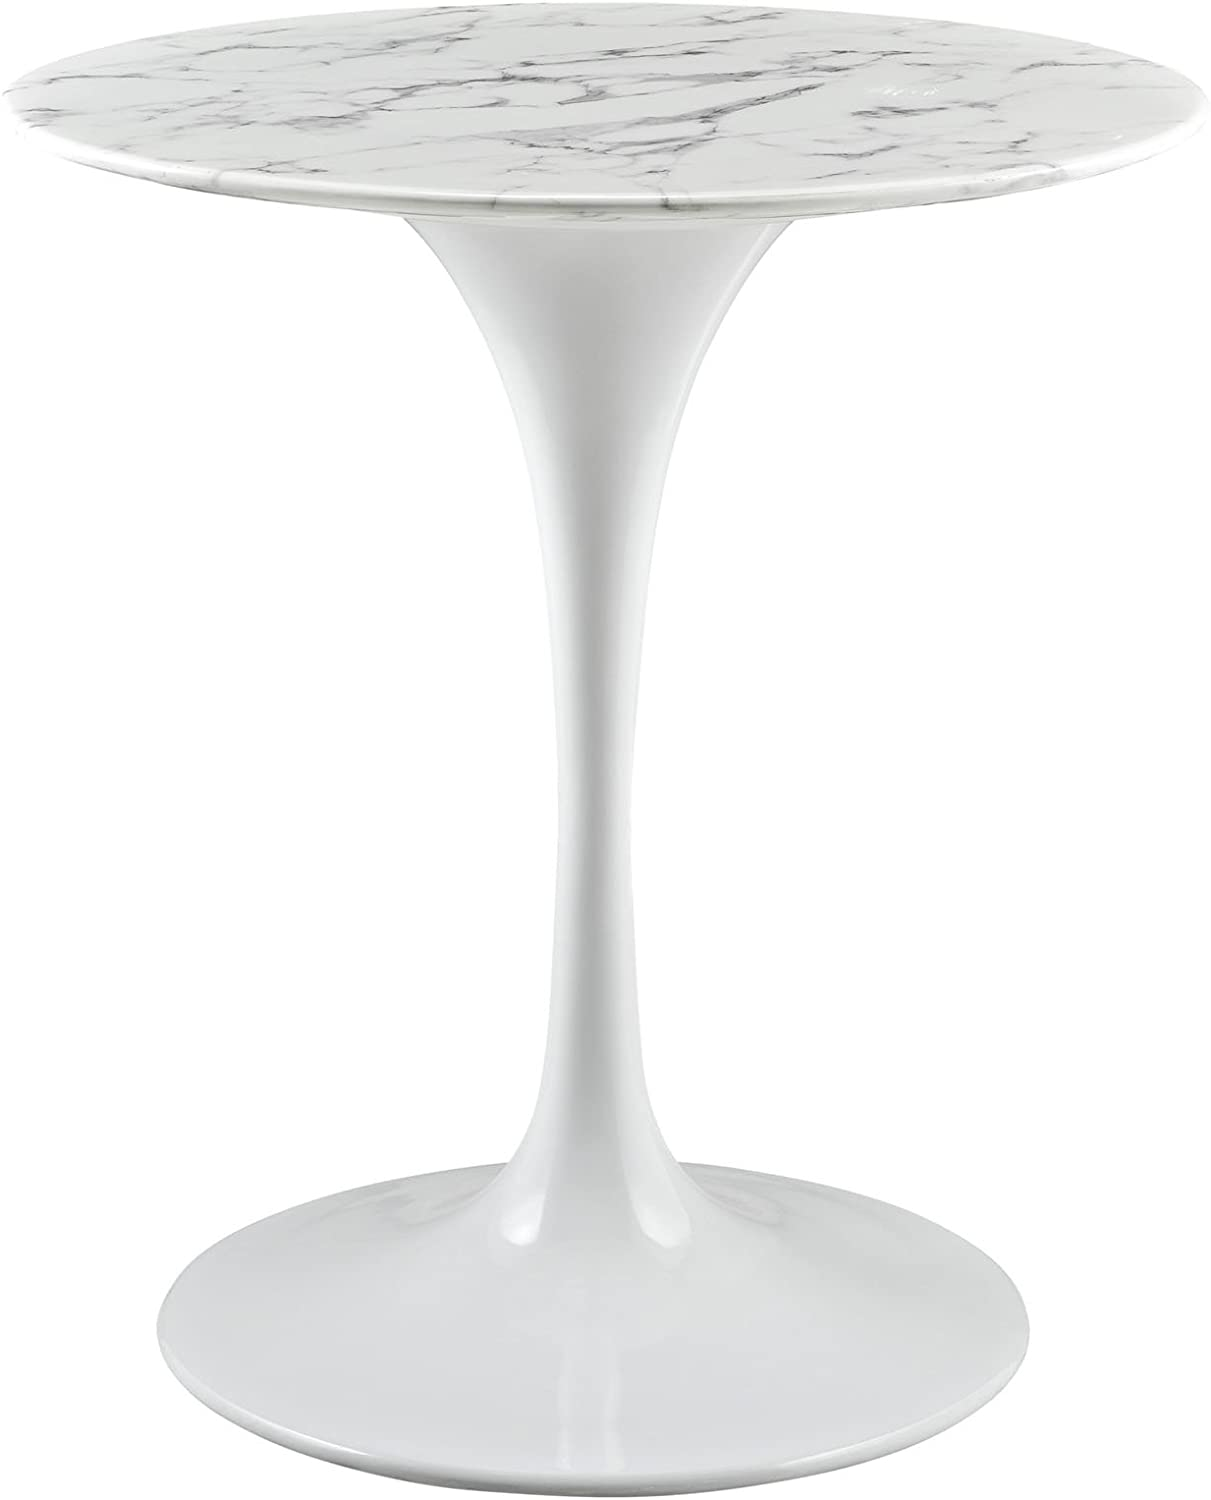 28 in. Artificial Marble Dining Table